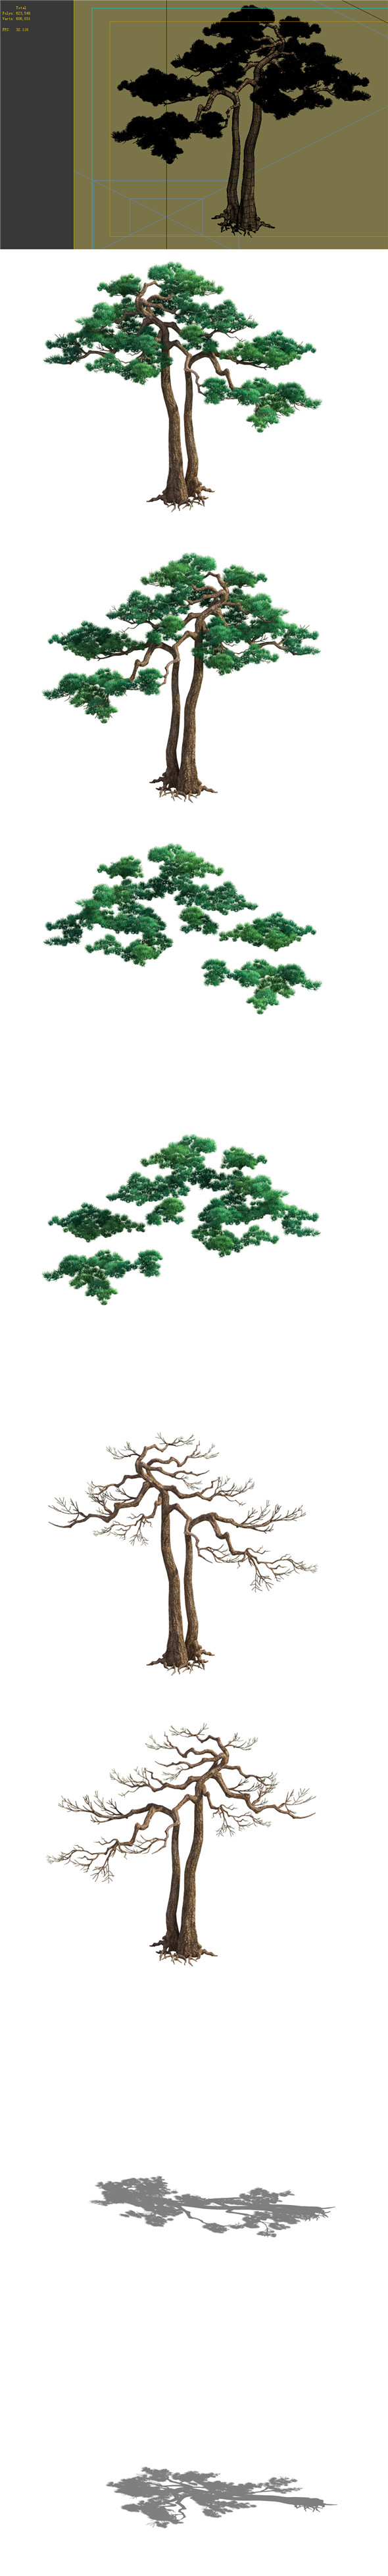 Game Model - Taoist comprehension scene - Pine 03 01 - 3DOcean Item for Sale